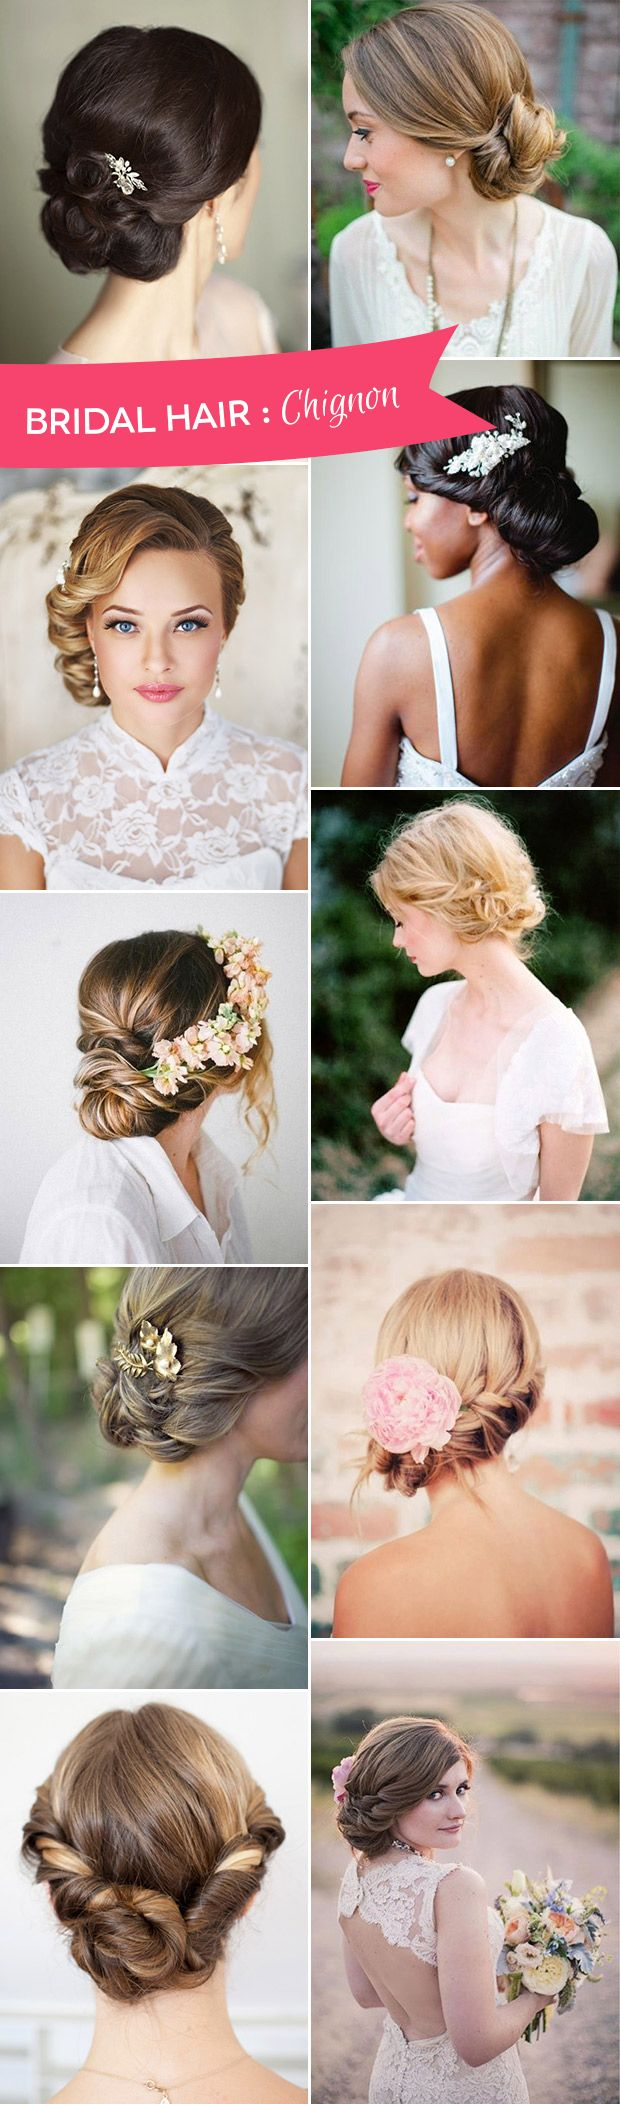 The Best of Bridal Chignon Hairstyles - We've picked 14 gorgeous options and found DIY instructions too | www.onefabday.com